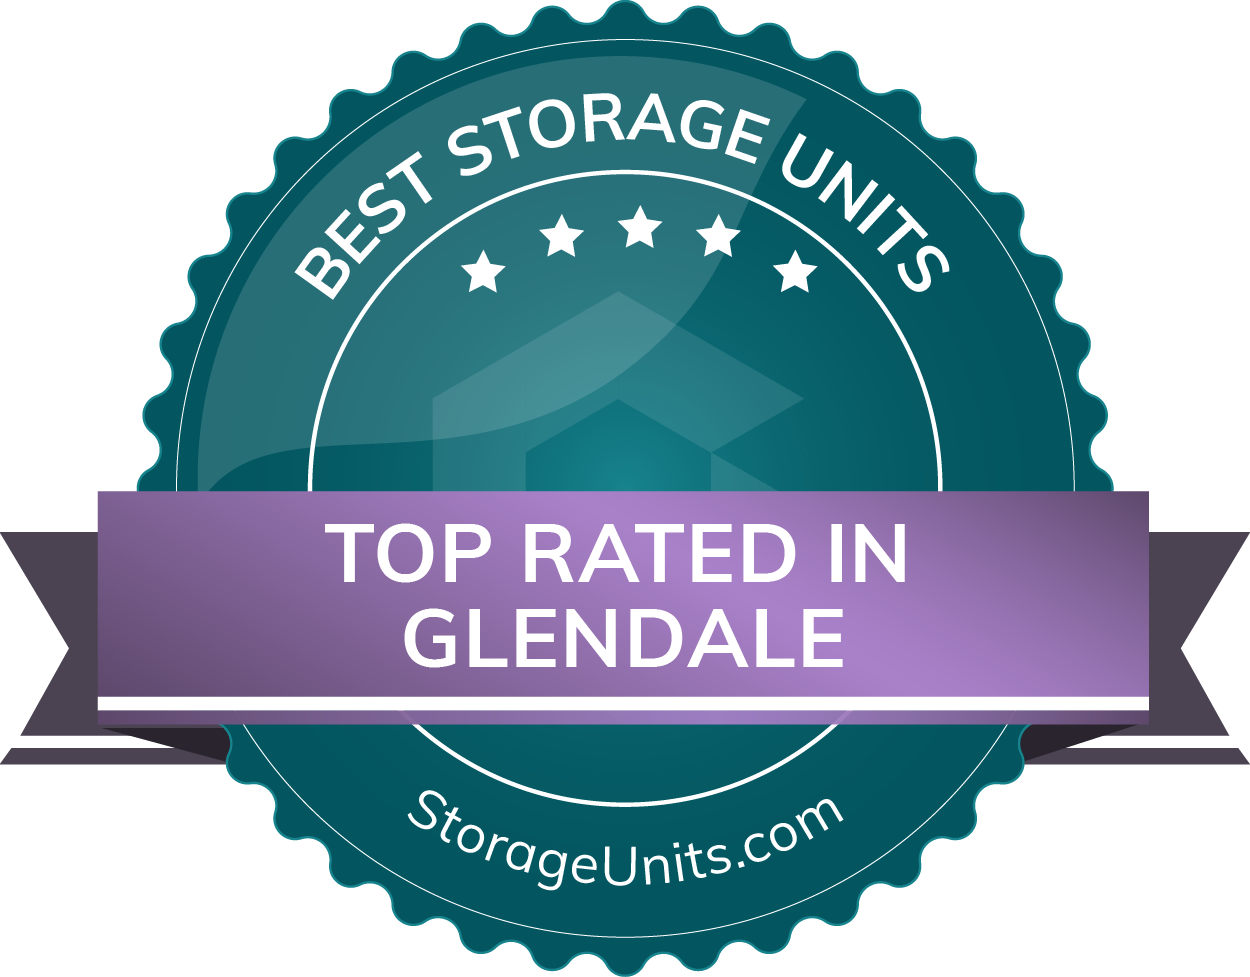 Best Self Storage Units in Glendale, AZ